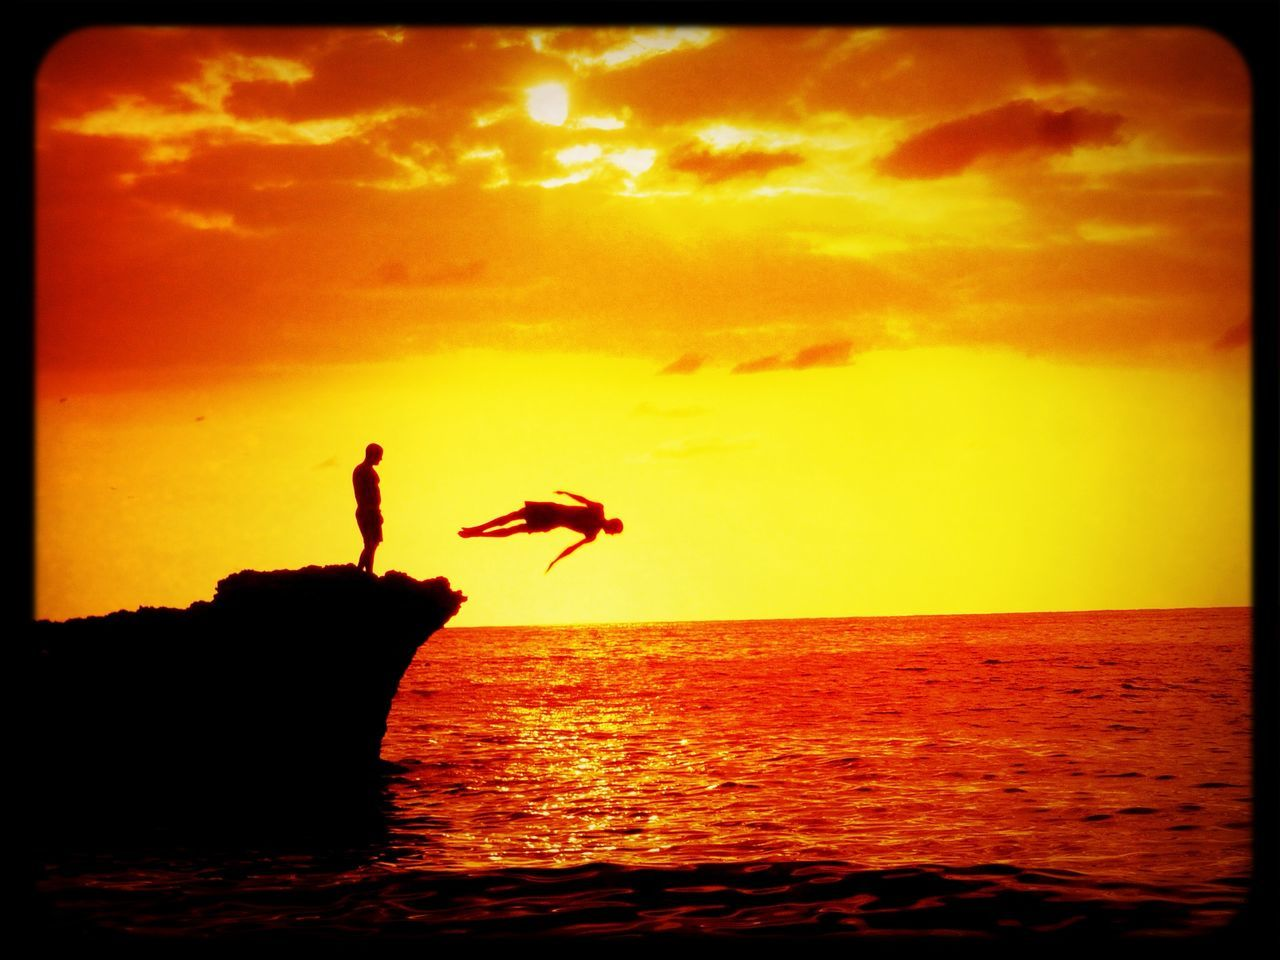 People diving into sea at sunset